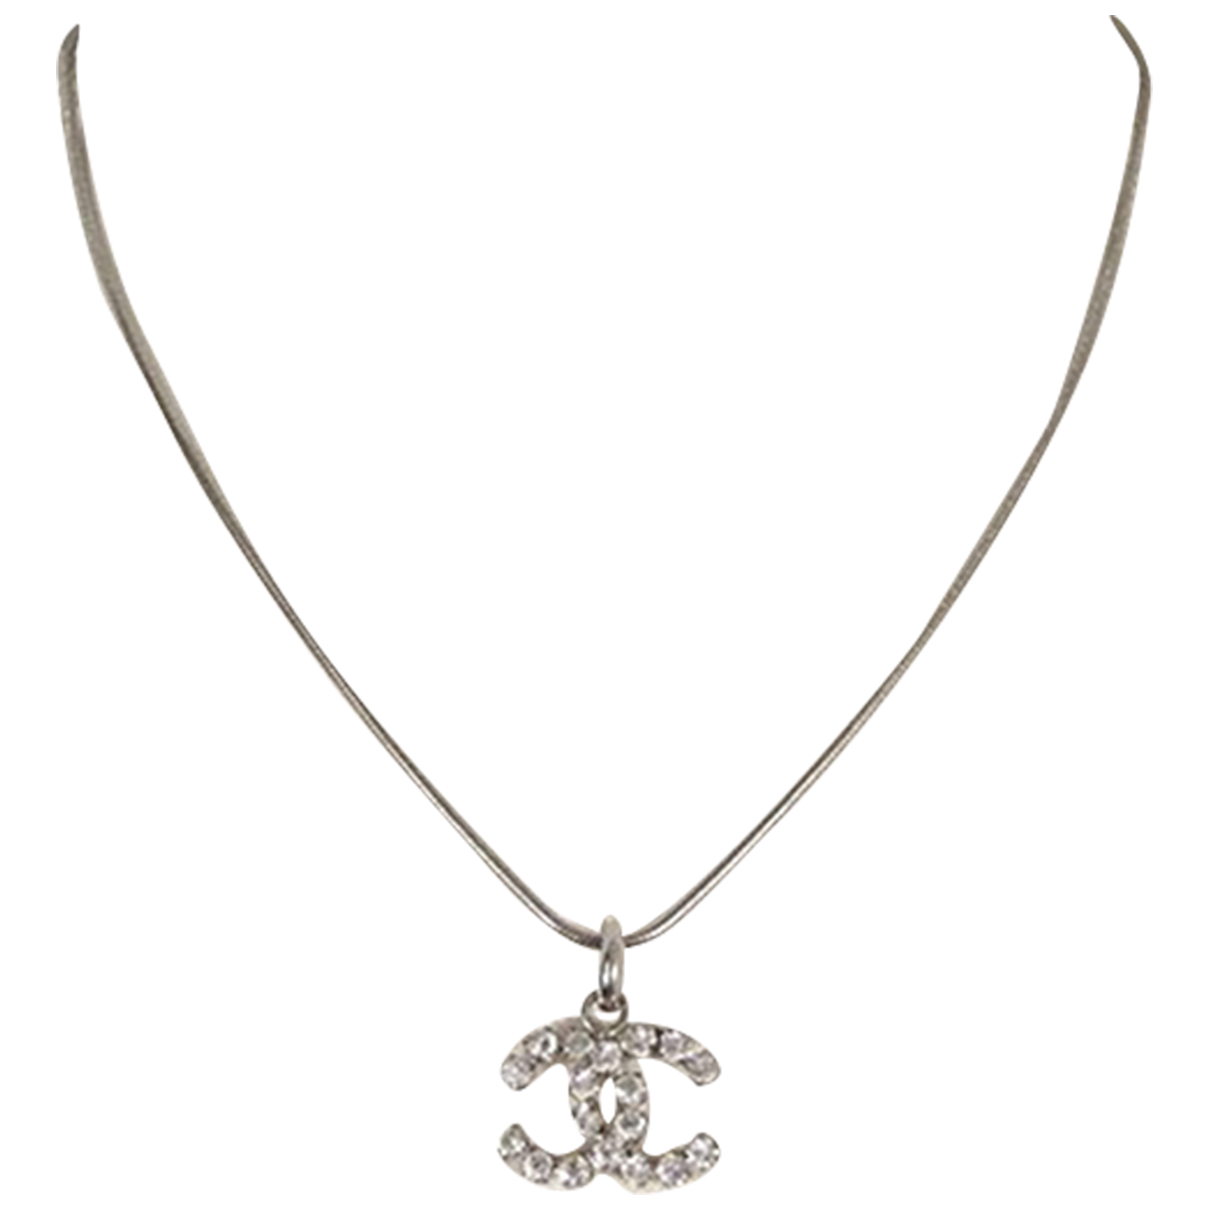 Chanel \N Kette in  Silber Metall